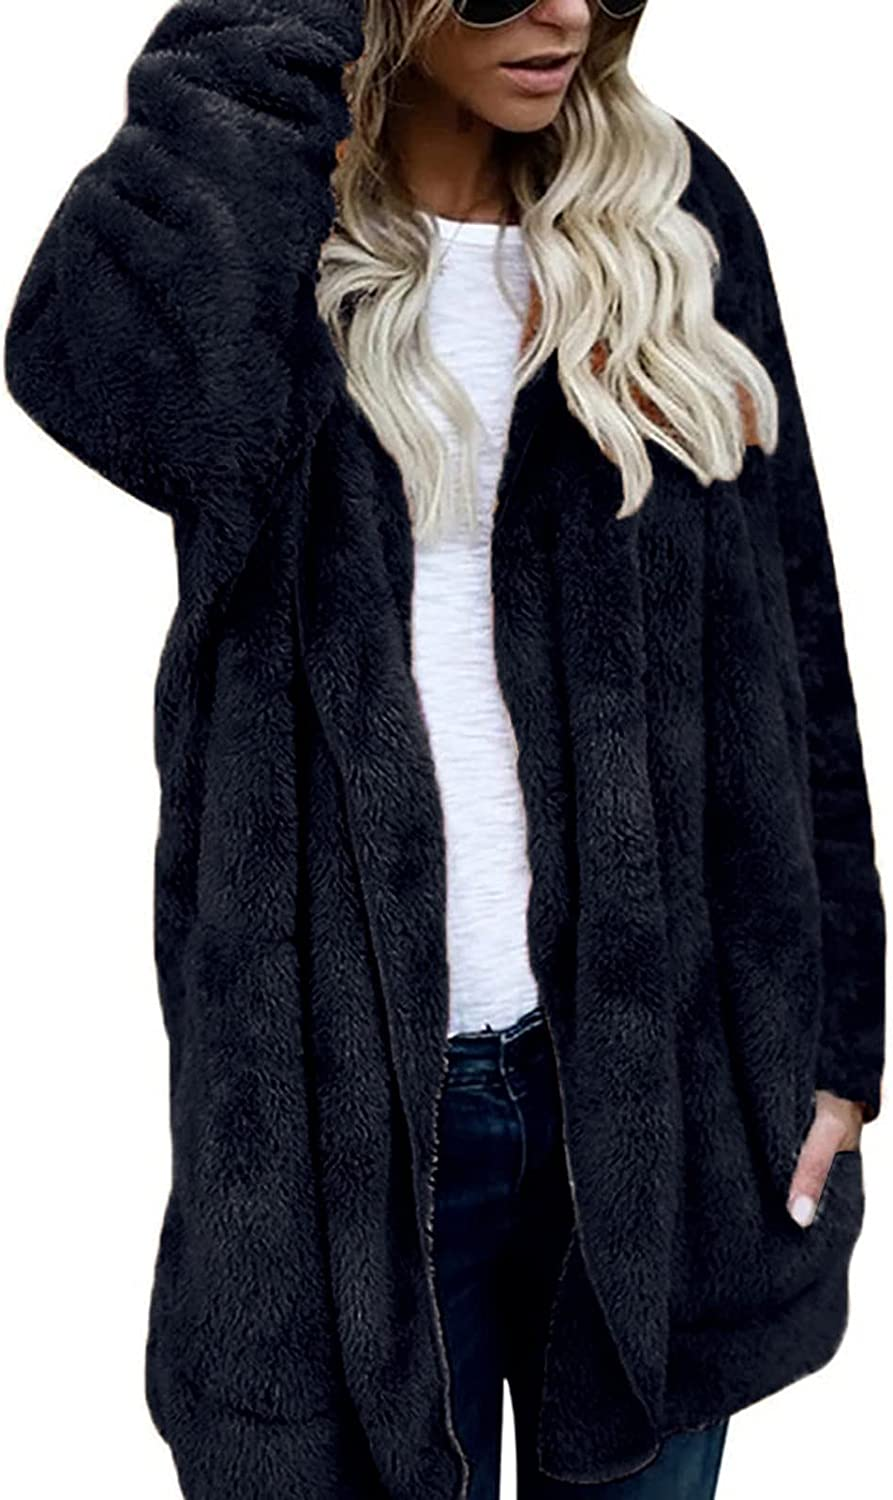 Women'S Winter Faux Fur Plush Solid Color Lapel Coat Mid-Length Long-Sleeved Cardigan With Pockets